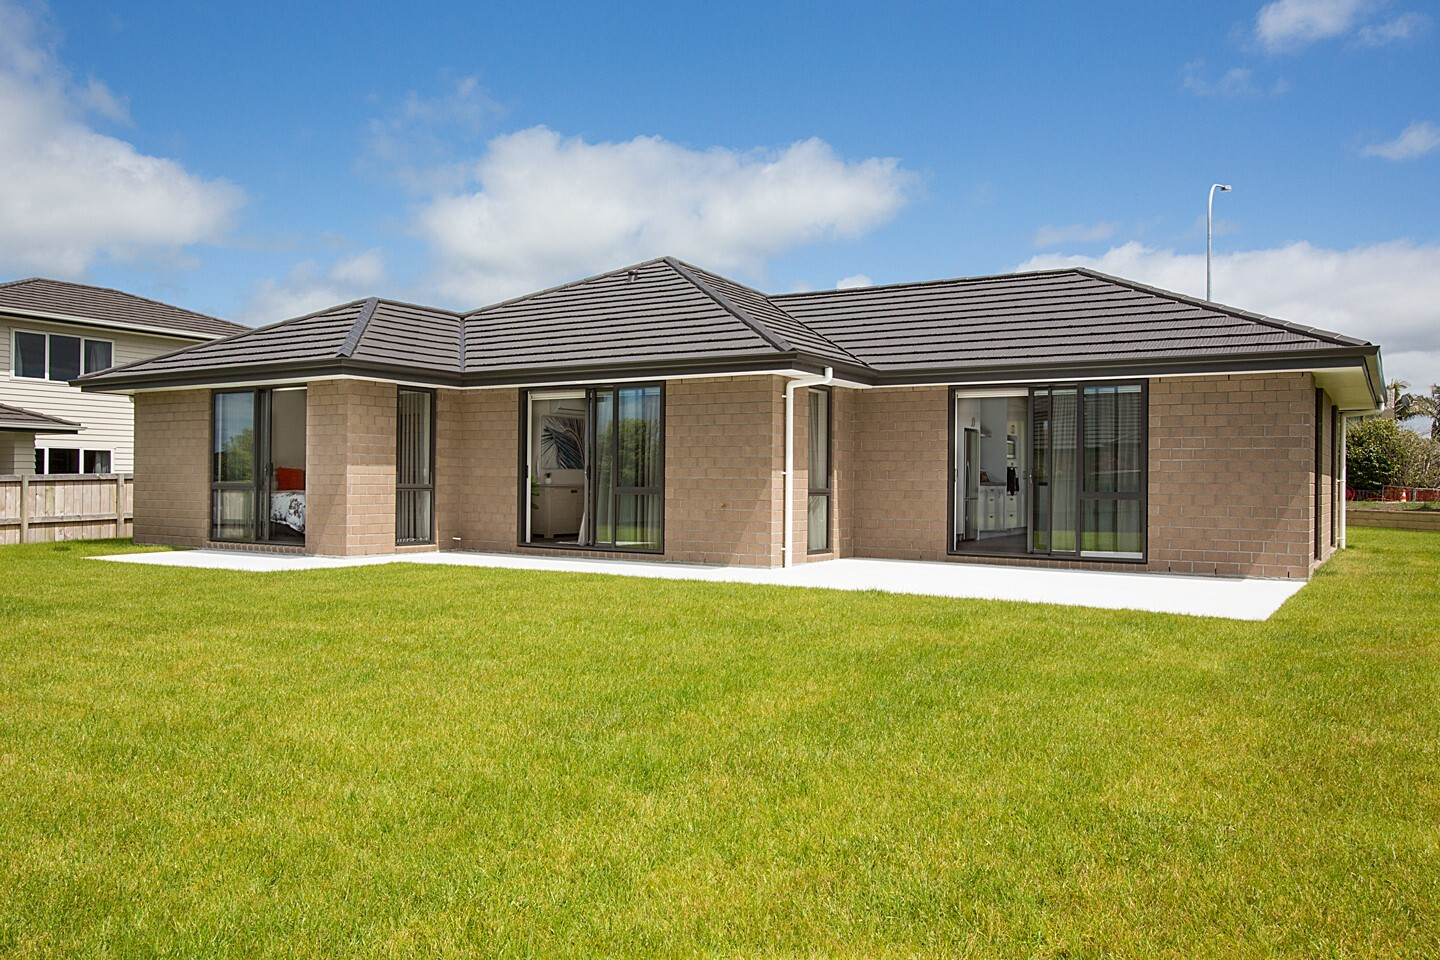 House design northland - Generation Homes House Plans One Tree Point Show Home